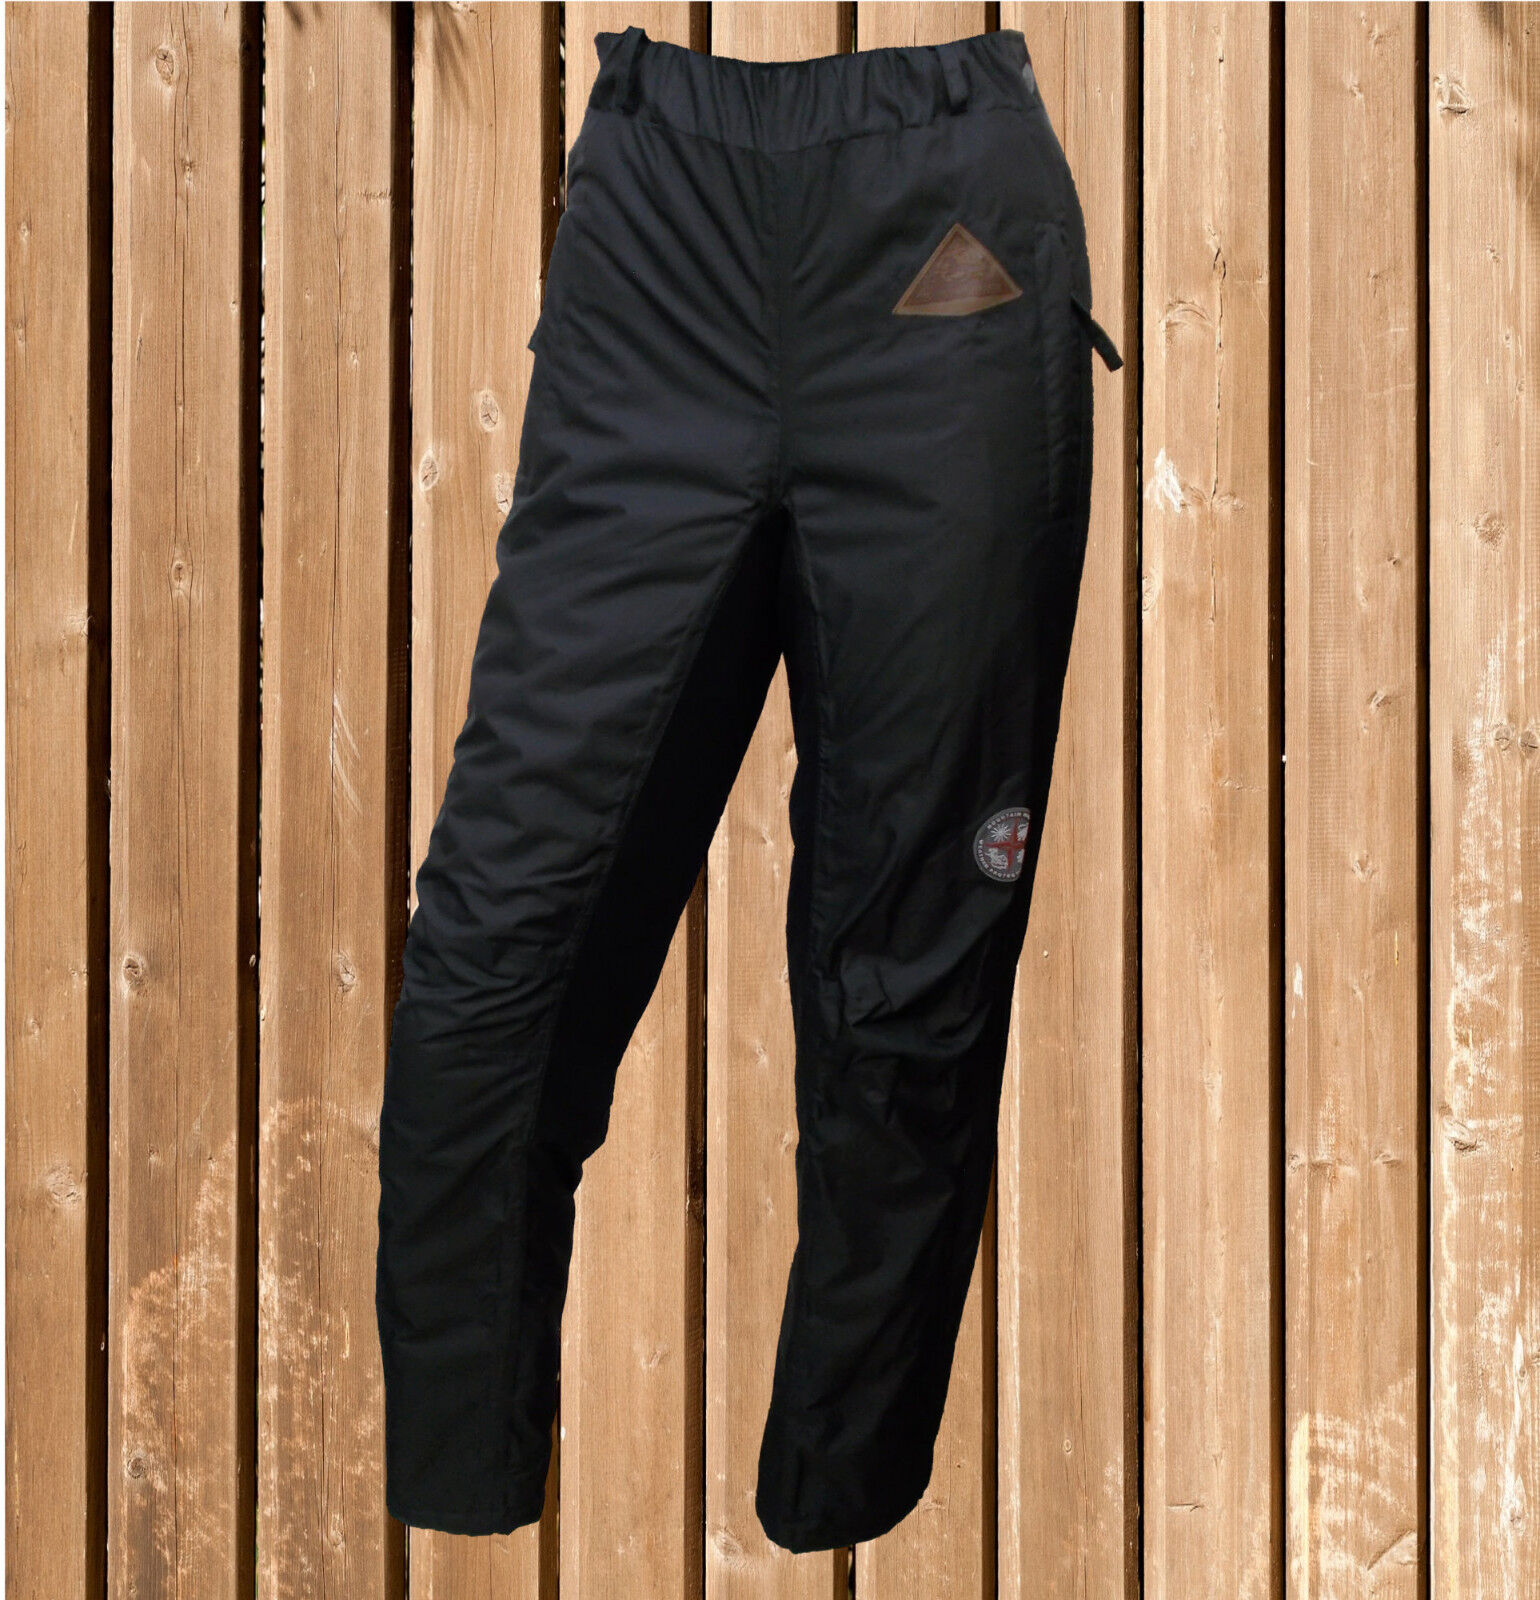 Mountain HORSE THERMO BREECHES, Warm Thermal Riding Hose Waterproof Over Pull Trousers